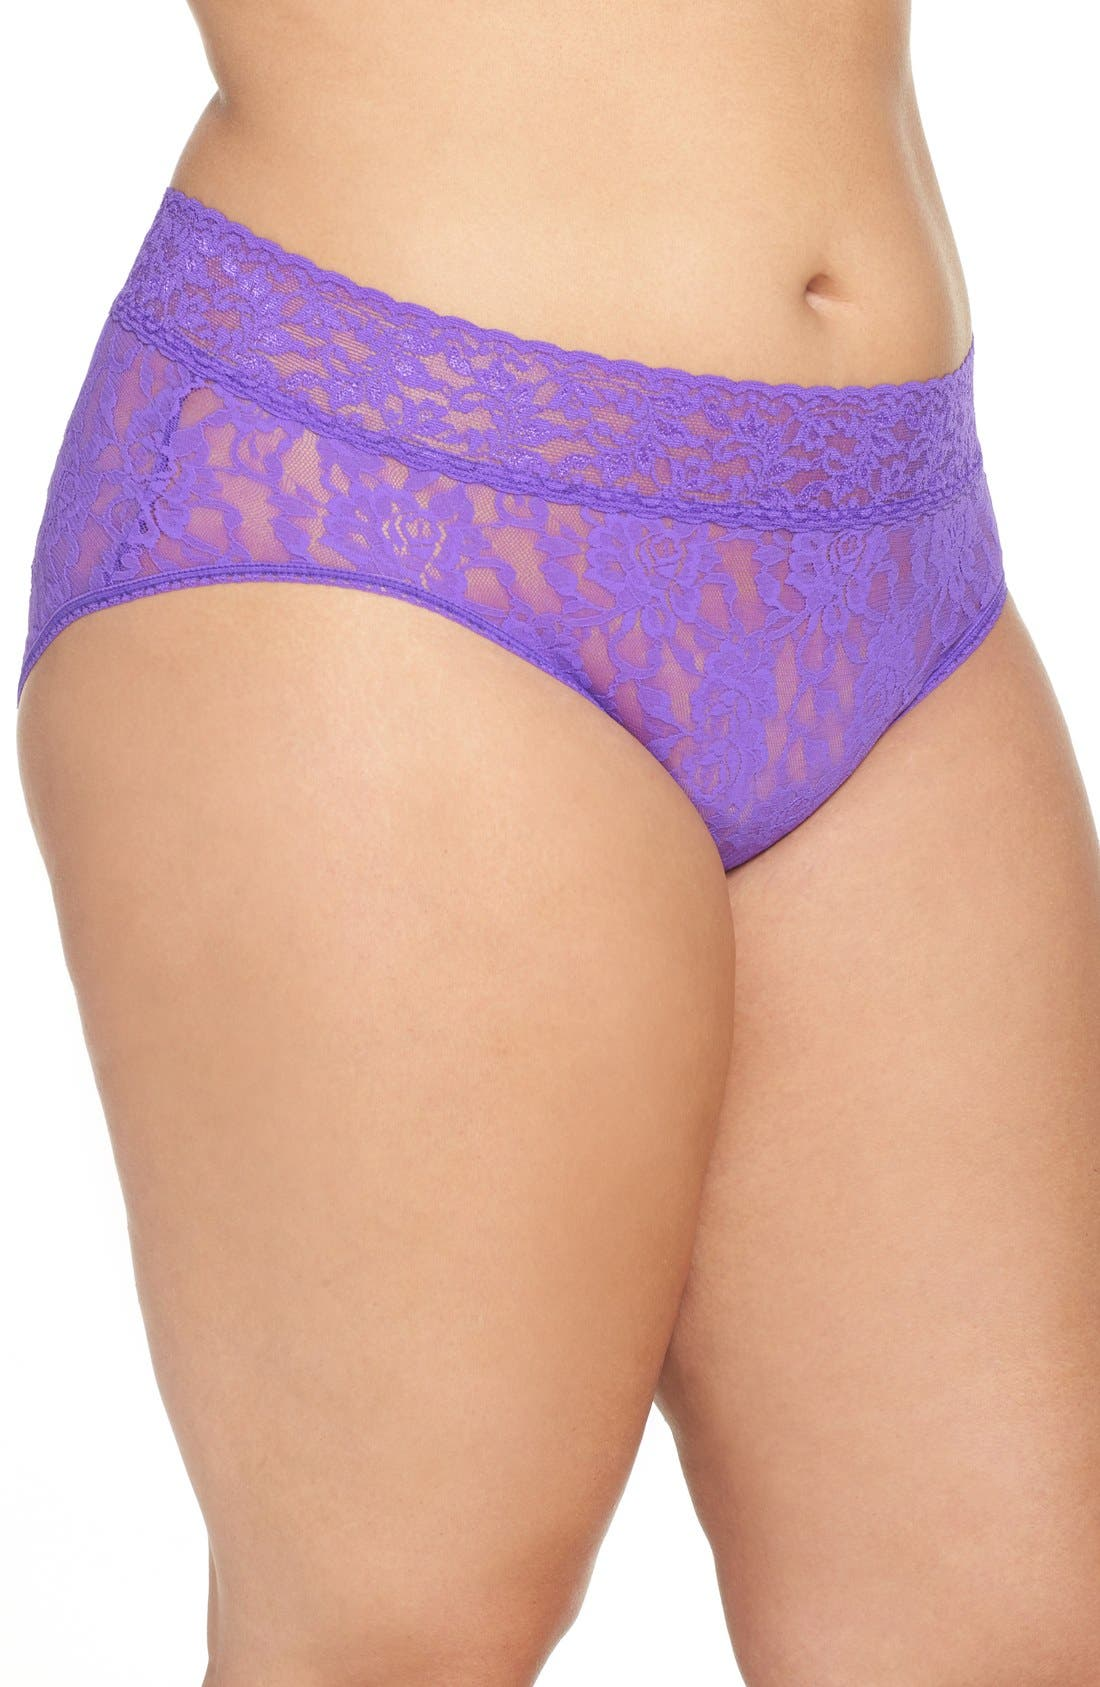 French Briefs,                             Alternate thumbnail 58, color,